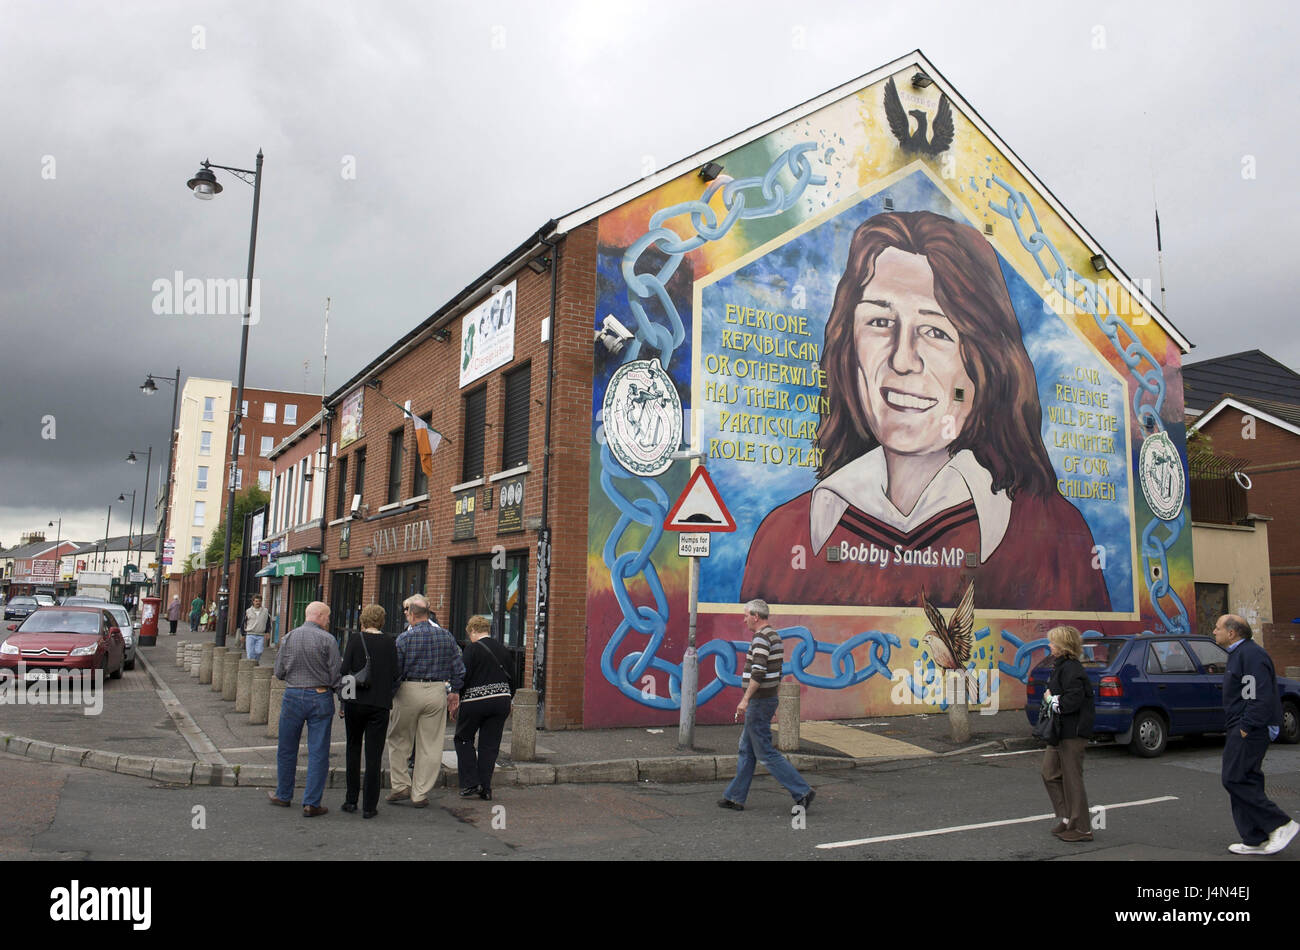 Northern Ireland, Ulster, county Antrim, Belfast, west Belfast, case Road, 'Bobby Sand' Mural, mural painting, - Stock Image